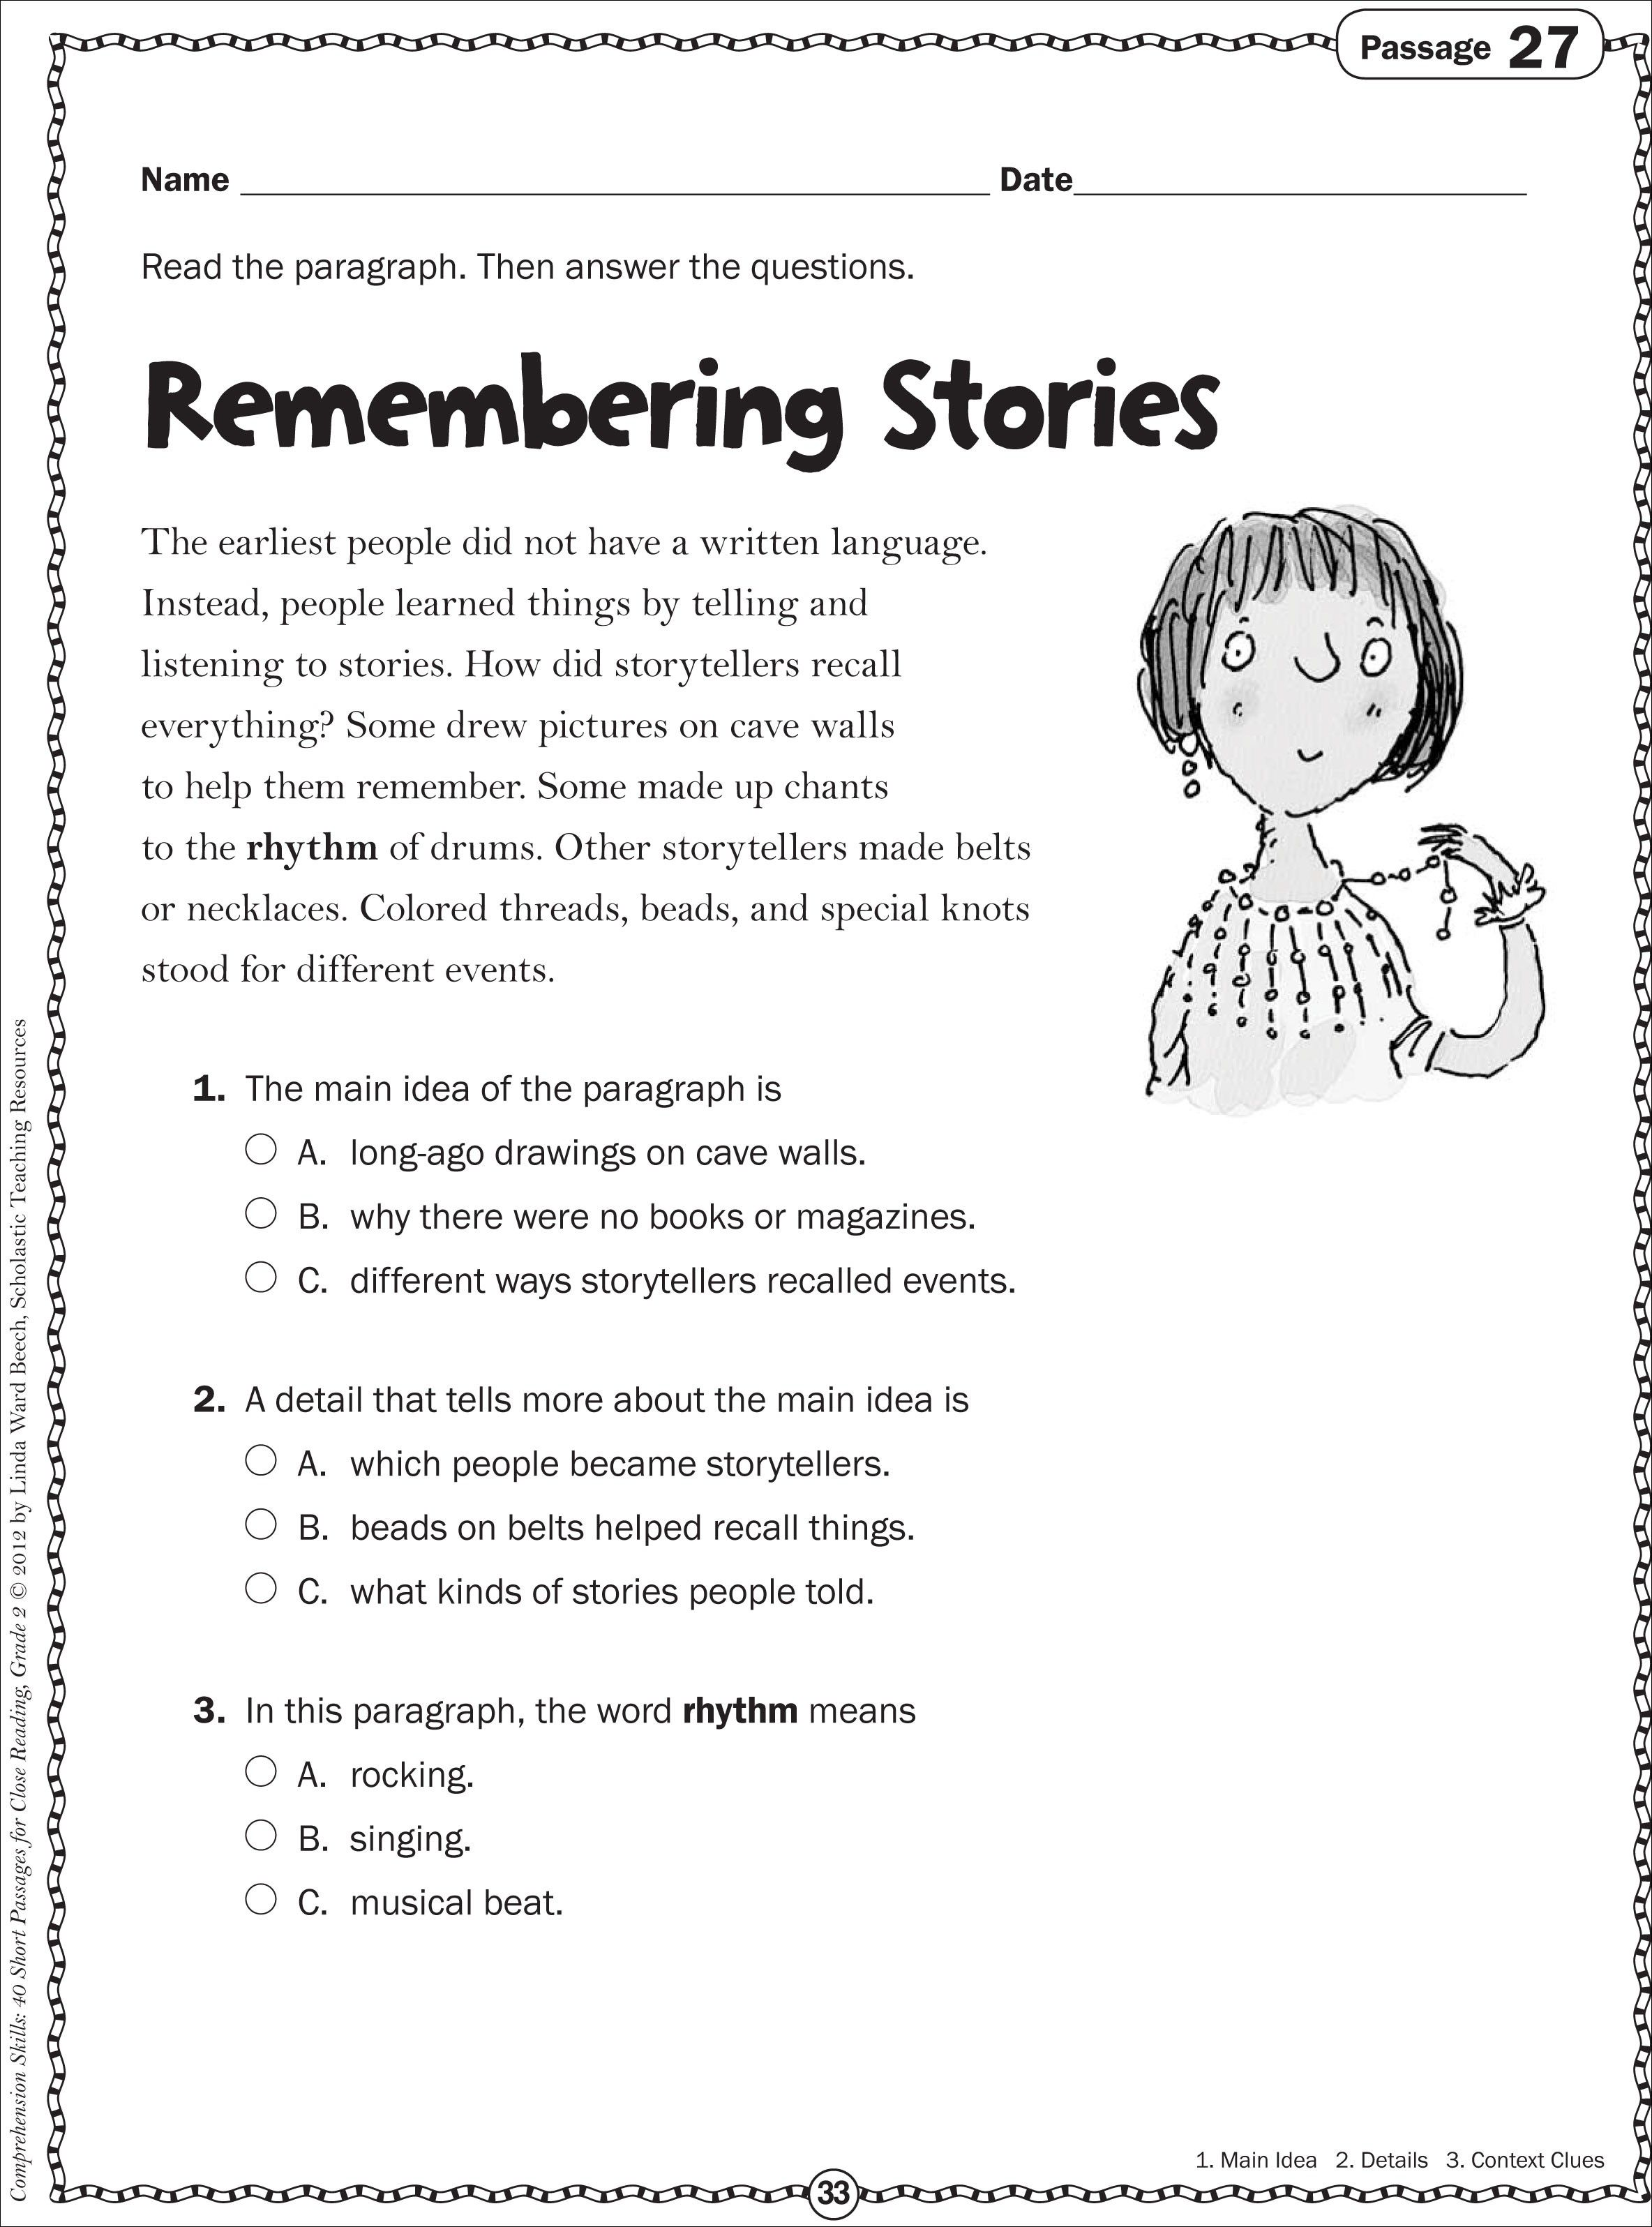 Worksheets 2nd Grade Ela Worksheets grade 2 reading passages memarchoapraga school pinterest improve comprehensionfree printable worksheetsreading